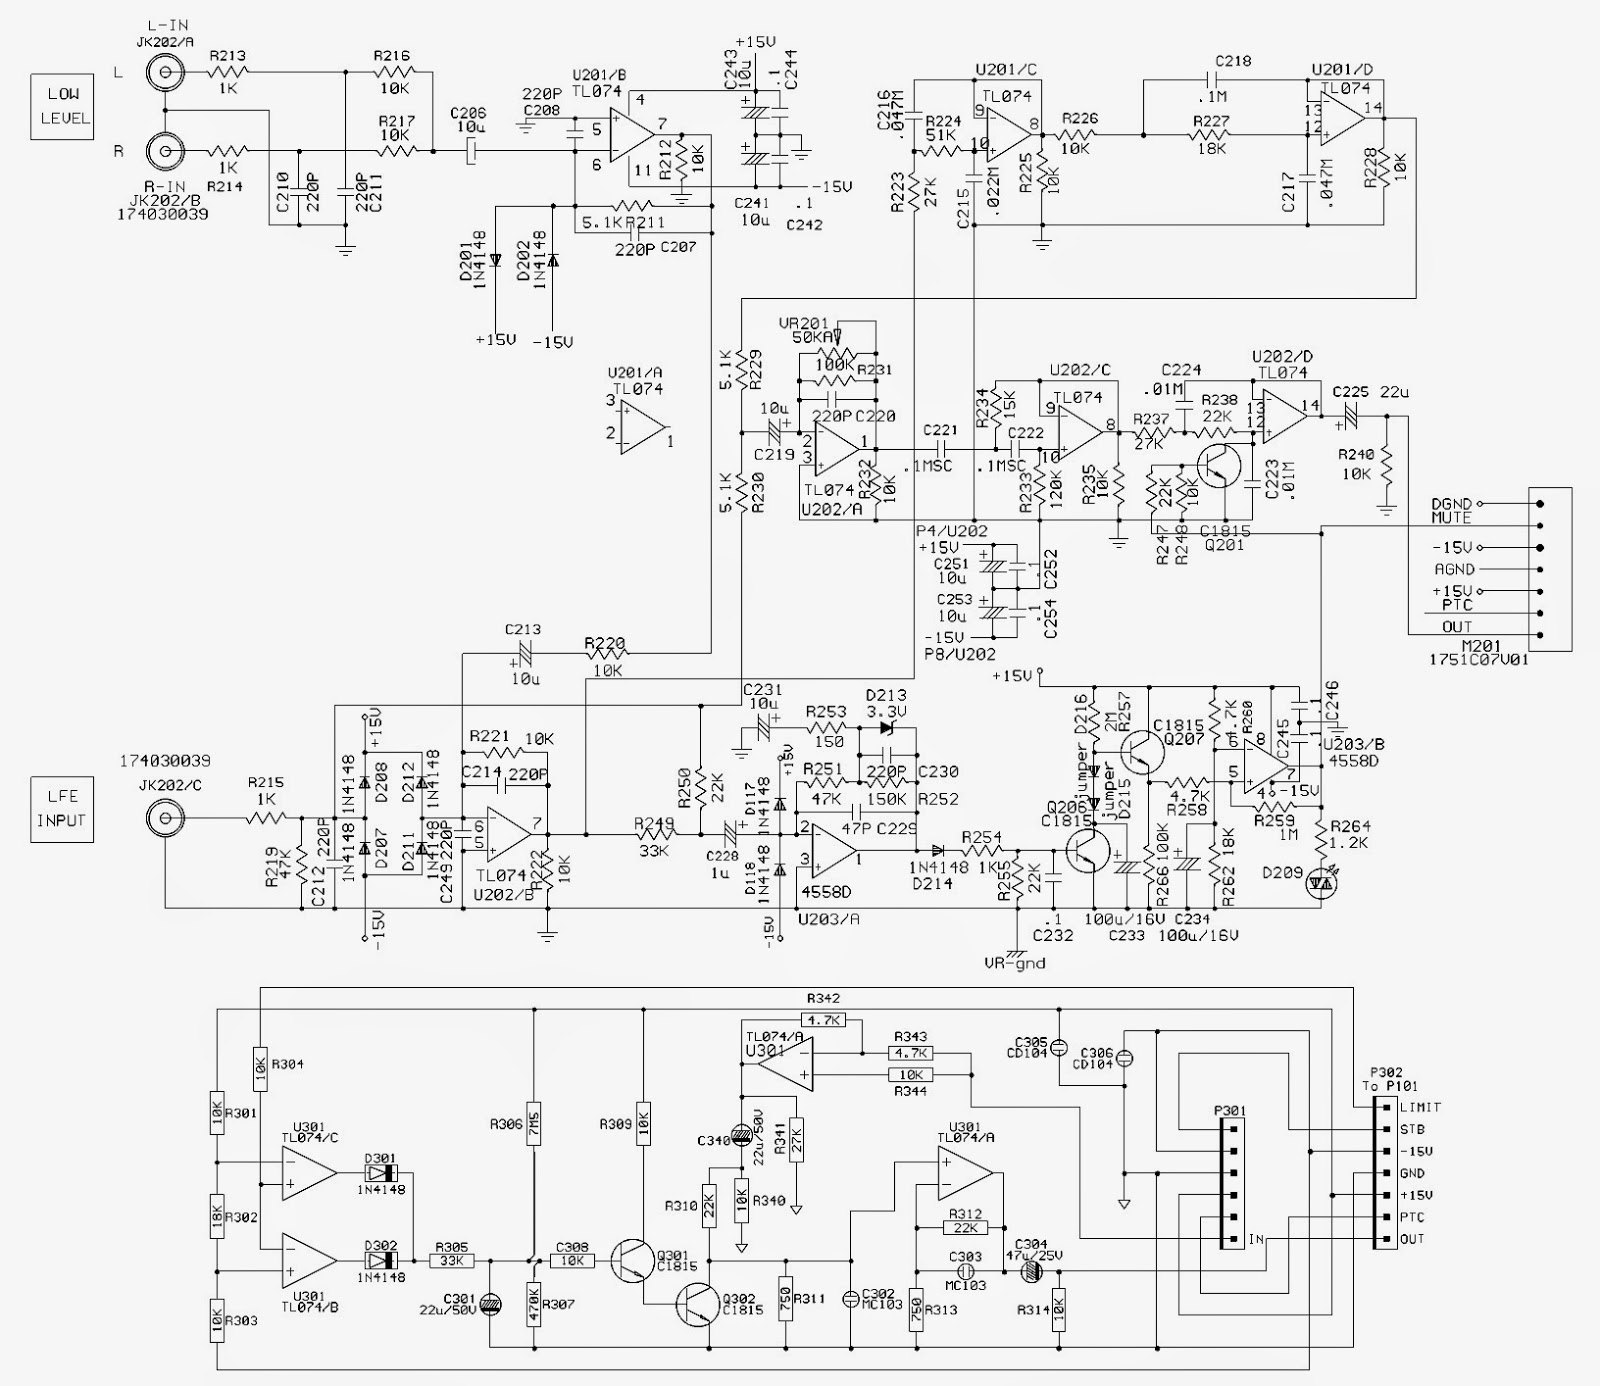 Circuit Diagram Help Auto Electrical Wiring 32pfl3605d Smps Power Supply Regulator Schematic Infinity Tss Sub 500